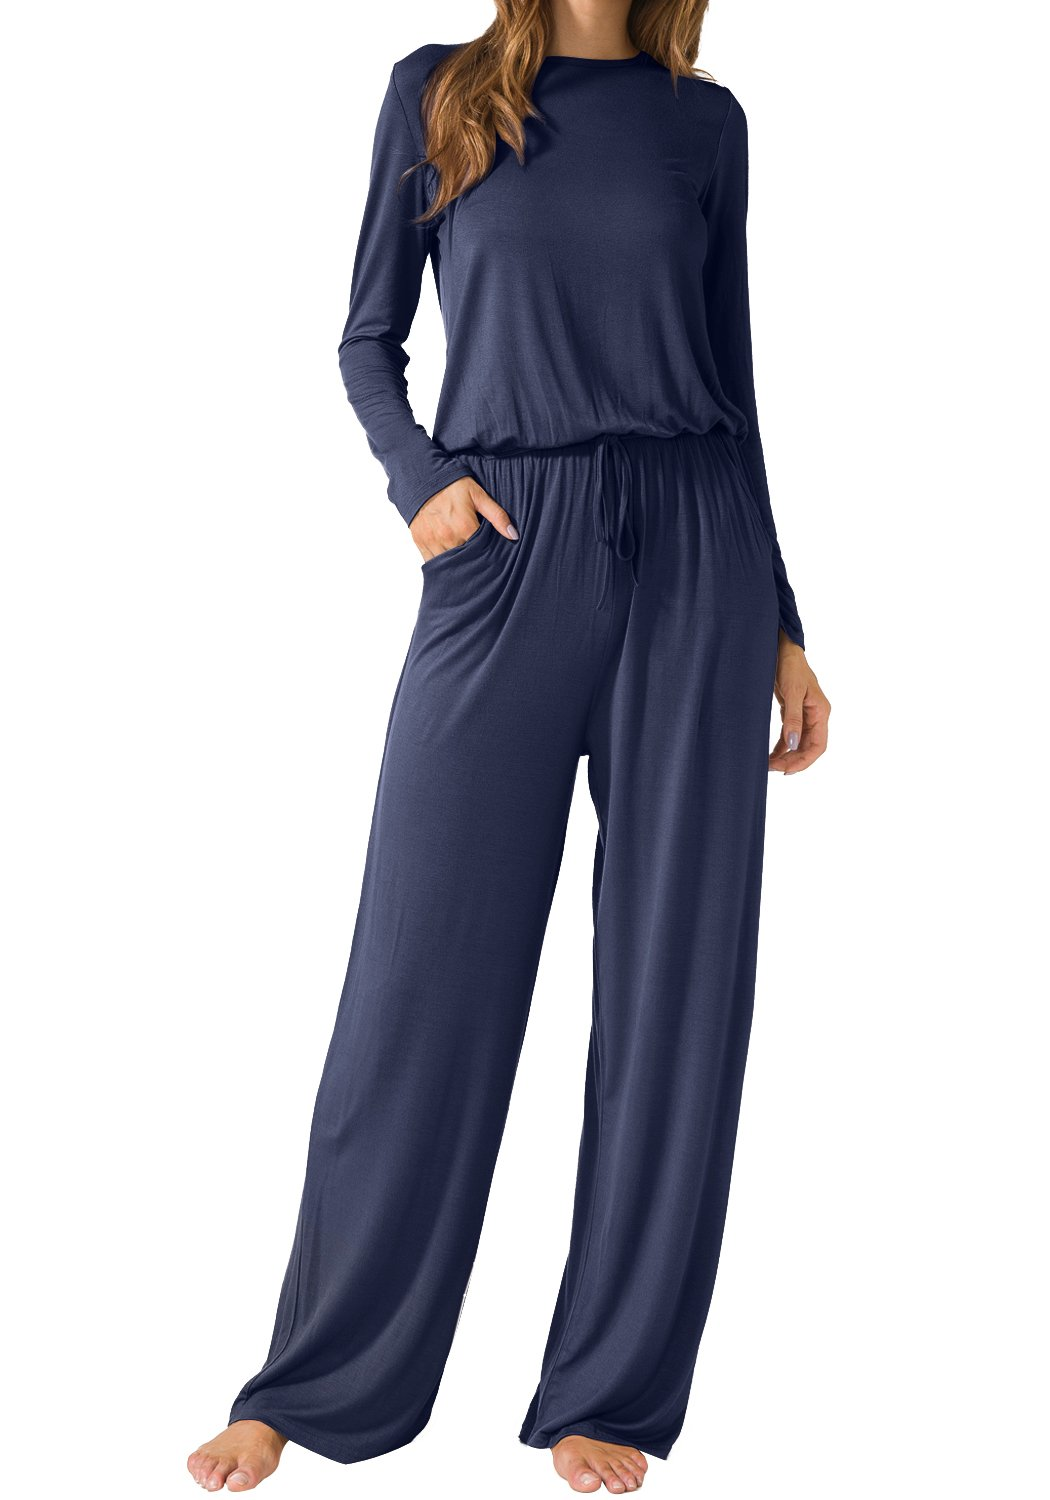 LAINAB Womens Casual Long Sleeves O Neck Wide Legs Playsuits Jumpsuits Deep Blue L